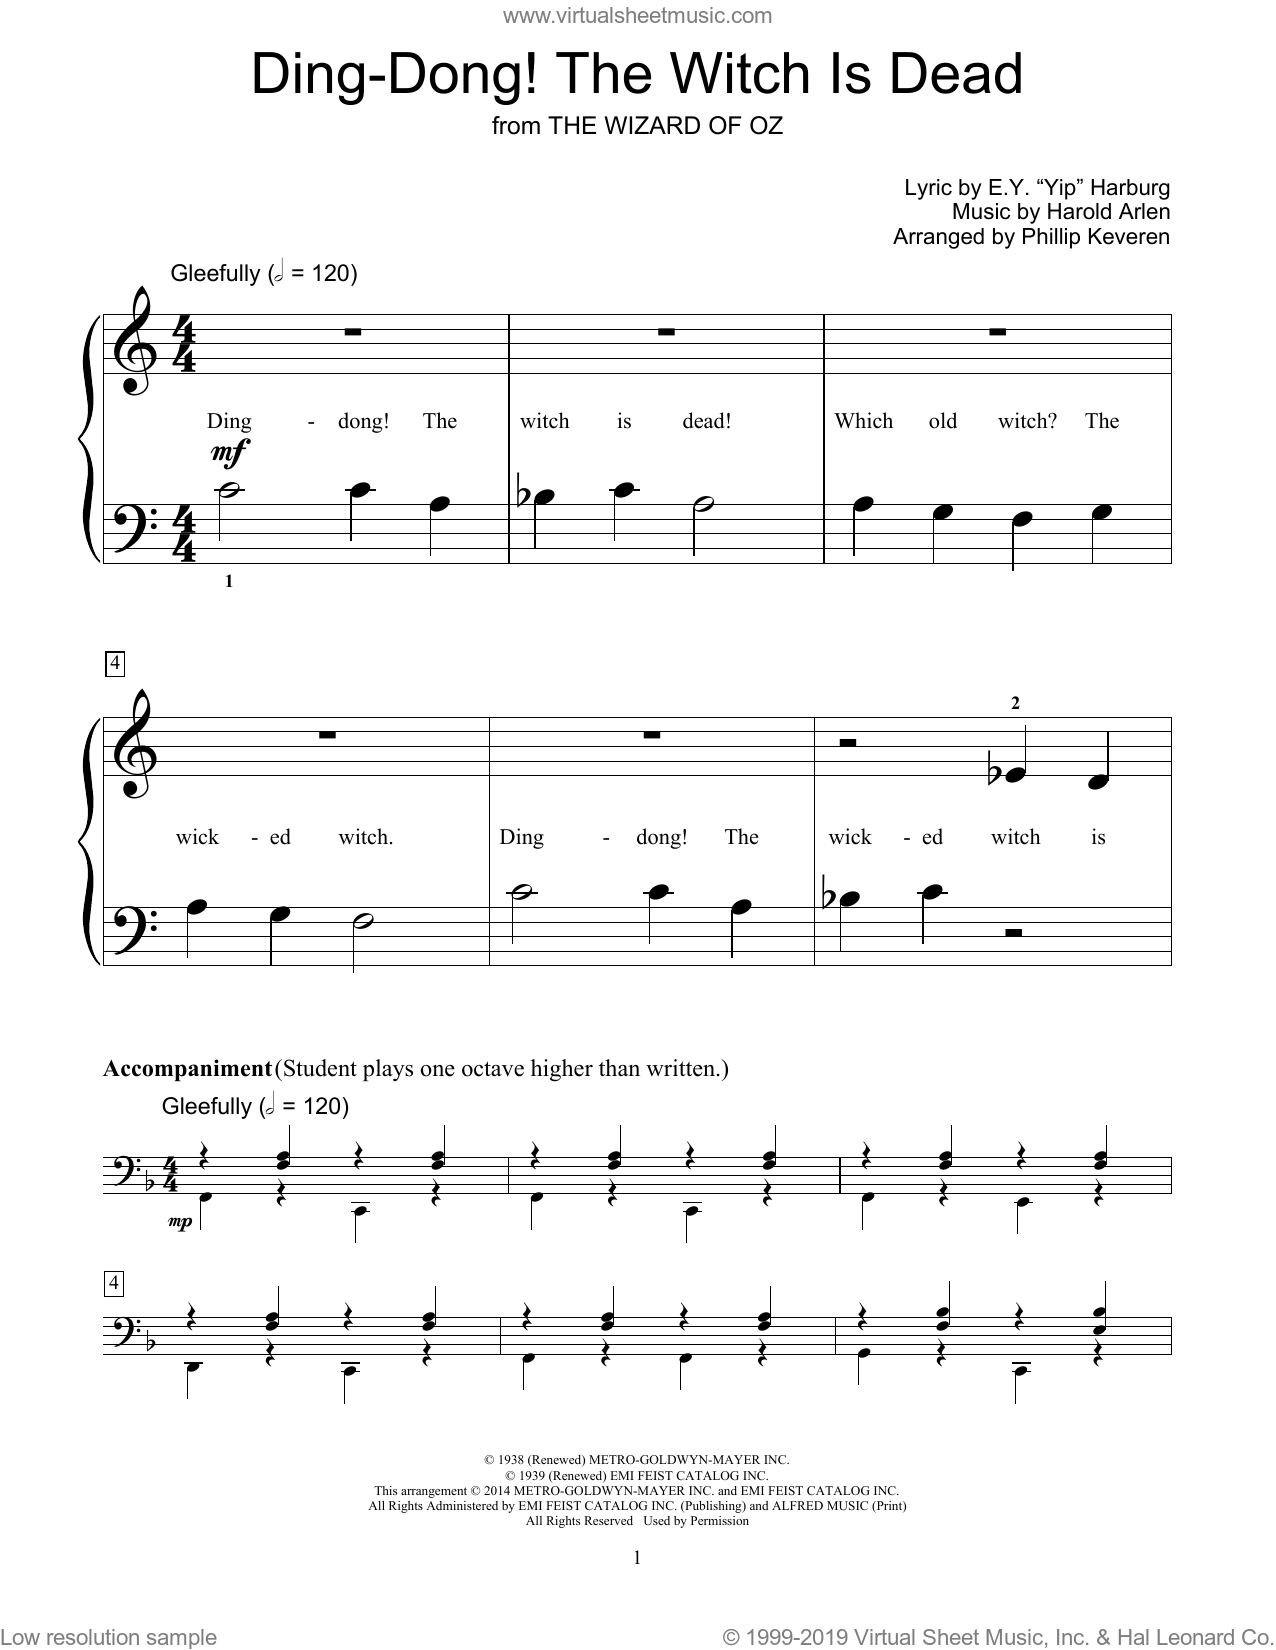 Ding-Dong! The Witch Is Dead sheet music for piano solo (elementary) by Harold Arlen, Phillip Keveren, Bill Boyd and E.Y. Harburg. Score Image Preview.